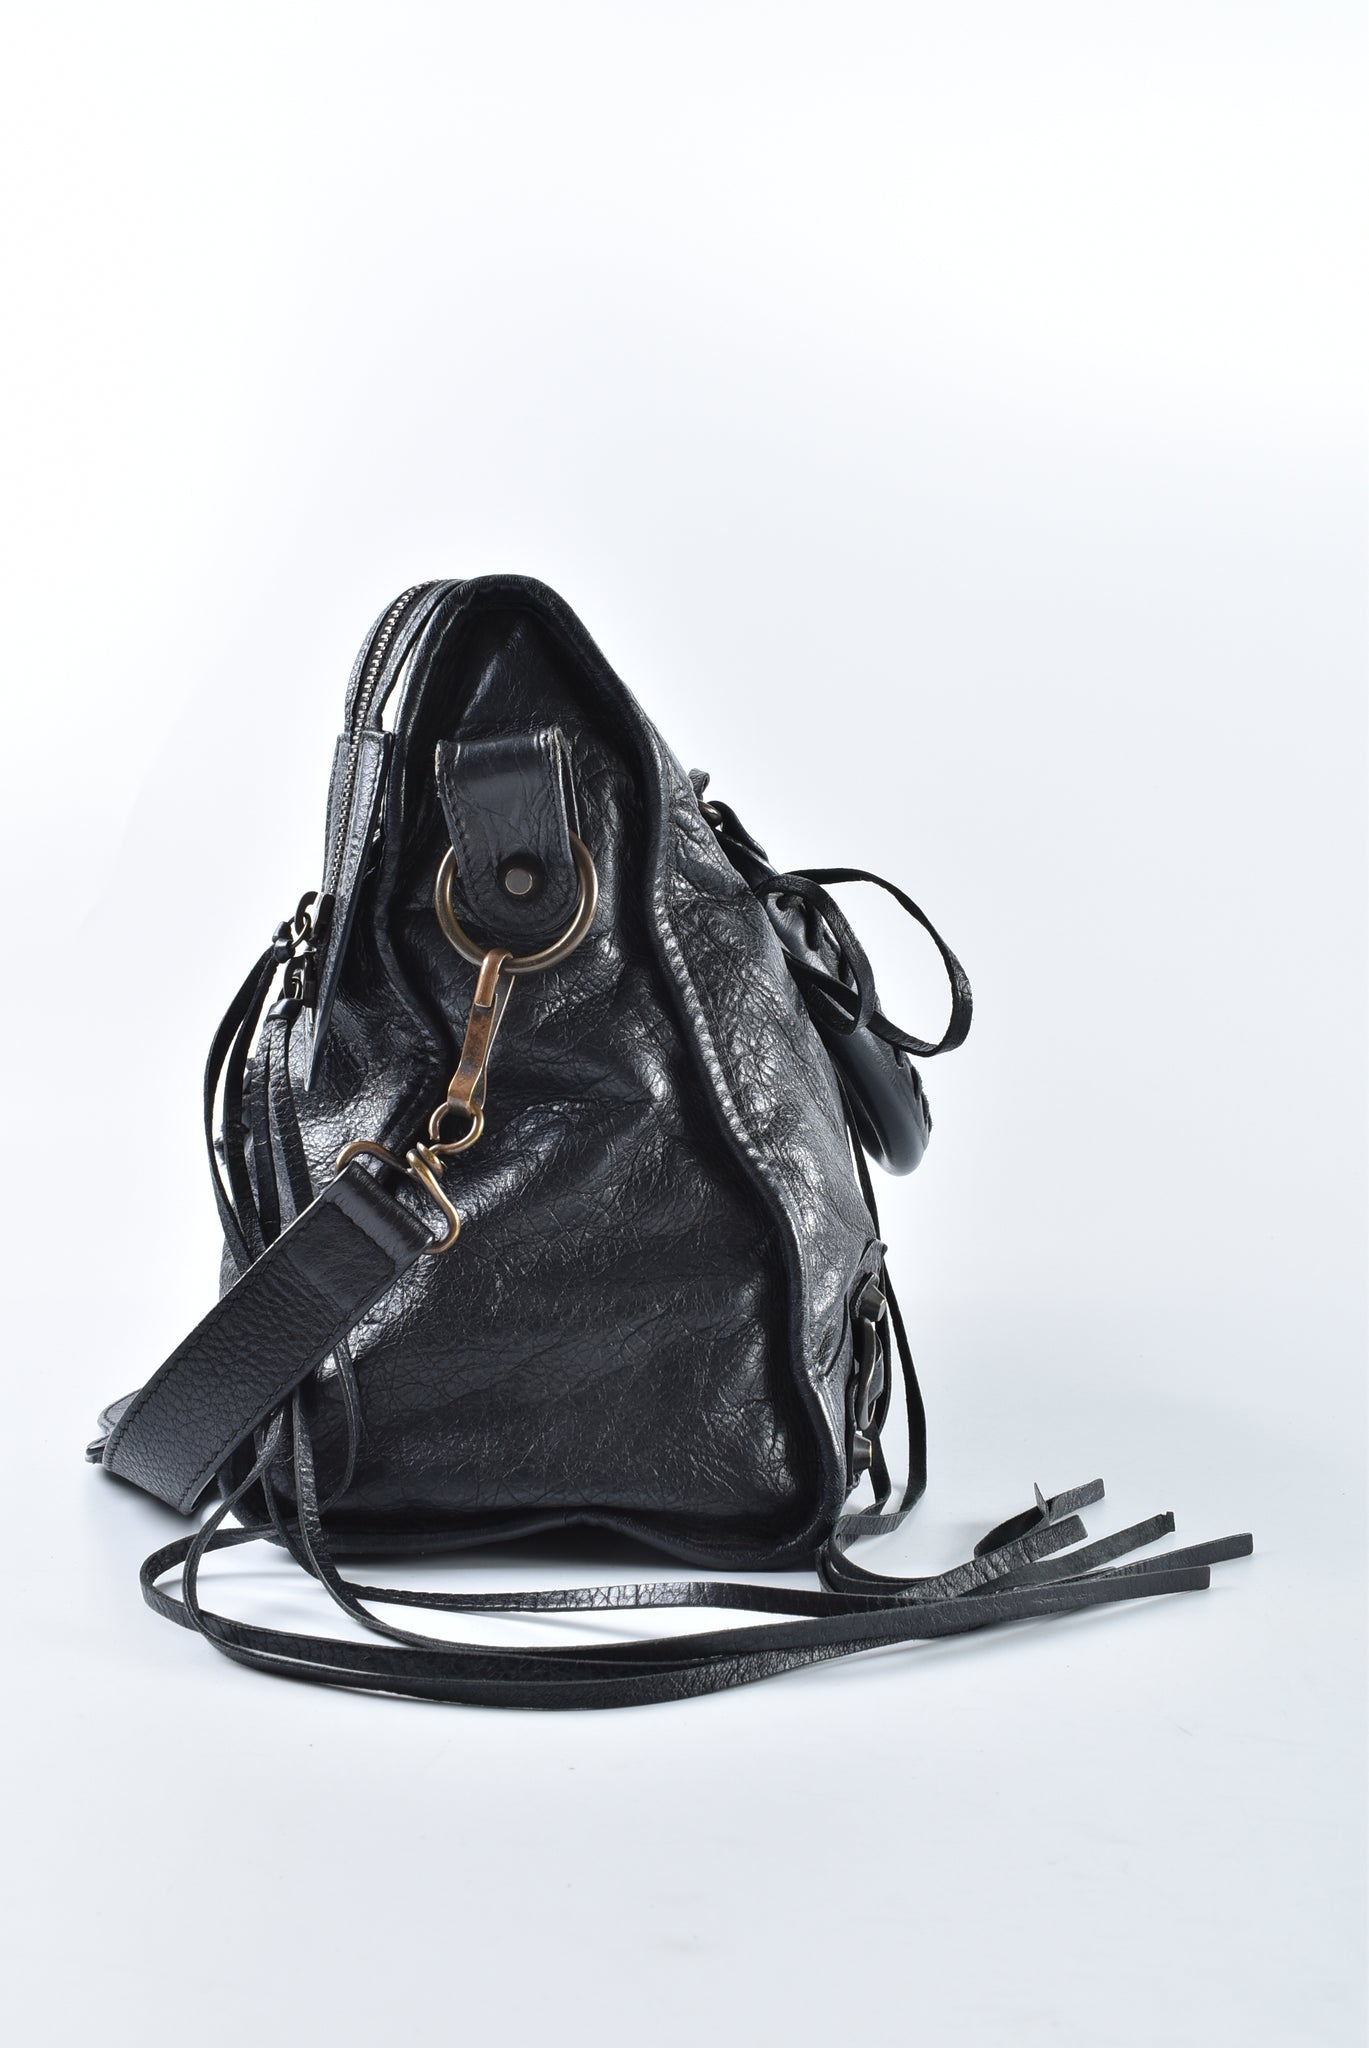 Balenciaga Classic City in Black 115748.1000 001317 (L) - Glampot